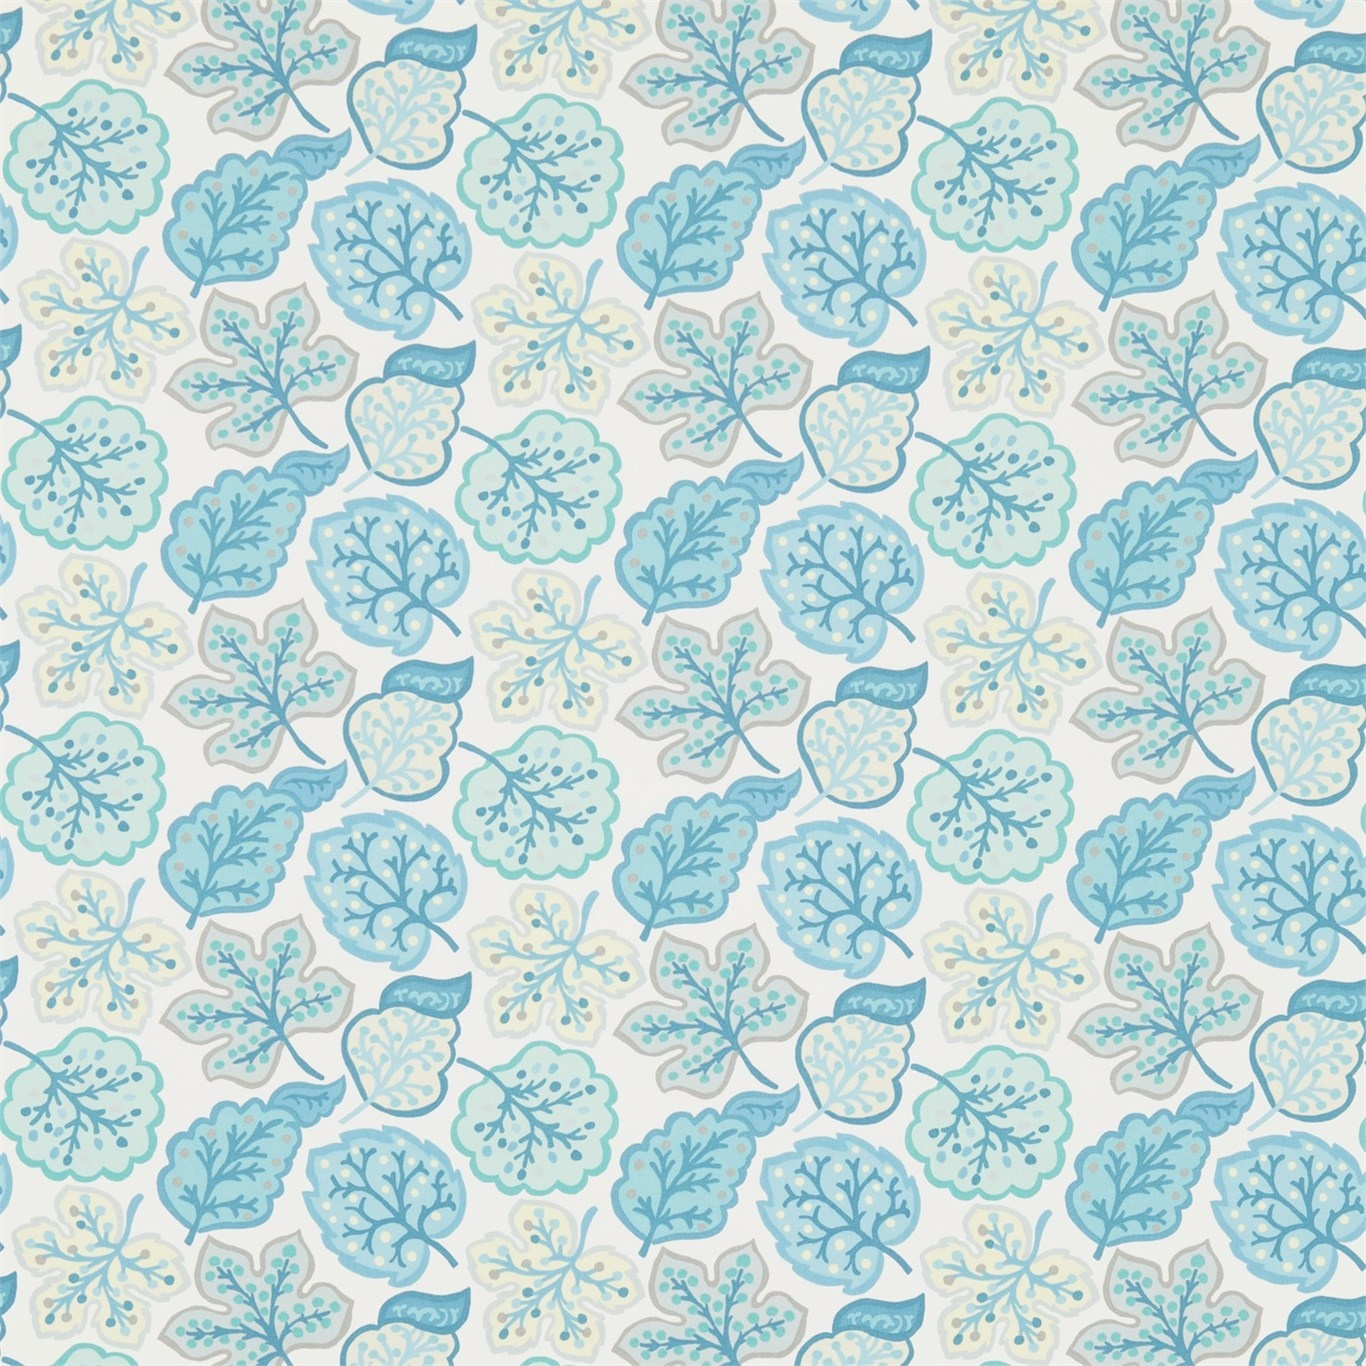 Image of Sanderson Jewel Leaves Mineral/Dove Fabric 224625